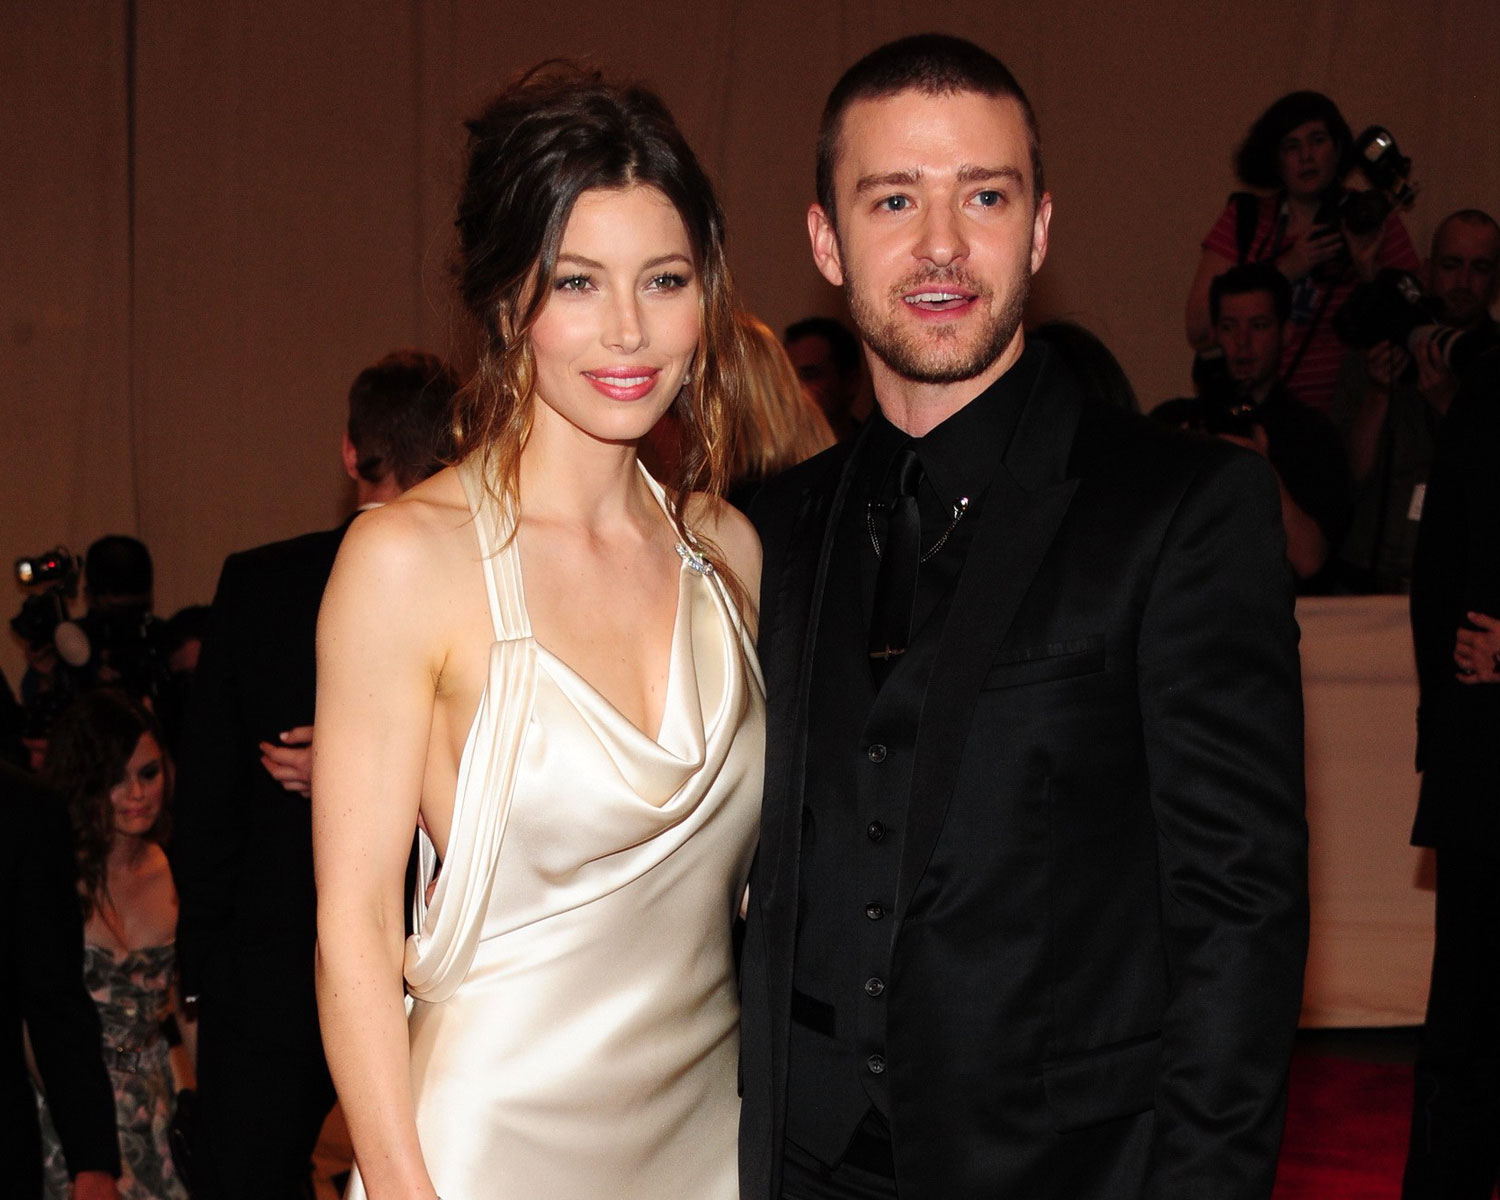 Justin Timberlake Reveals How He Proposed to Jessica Biel